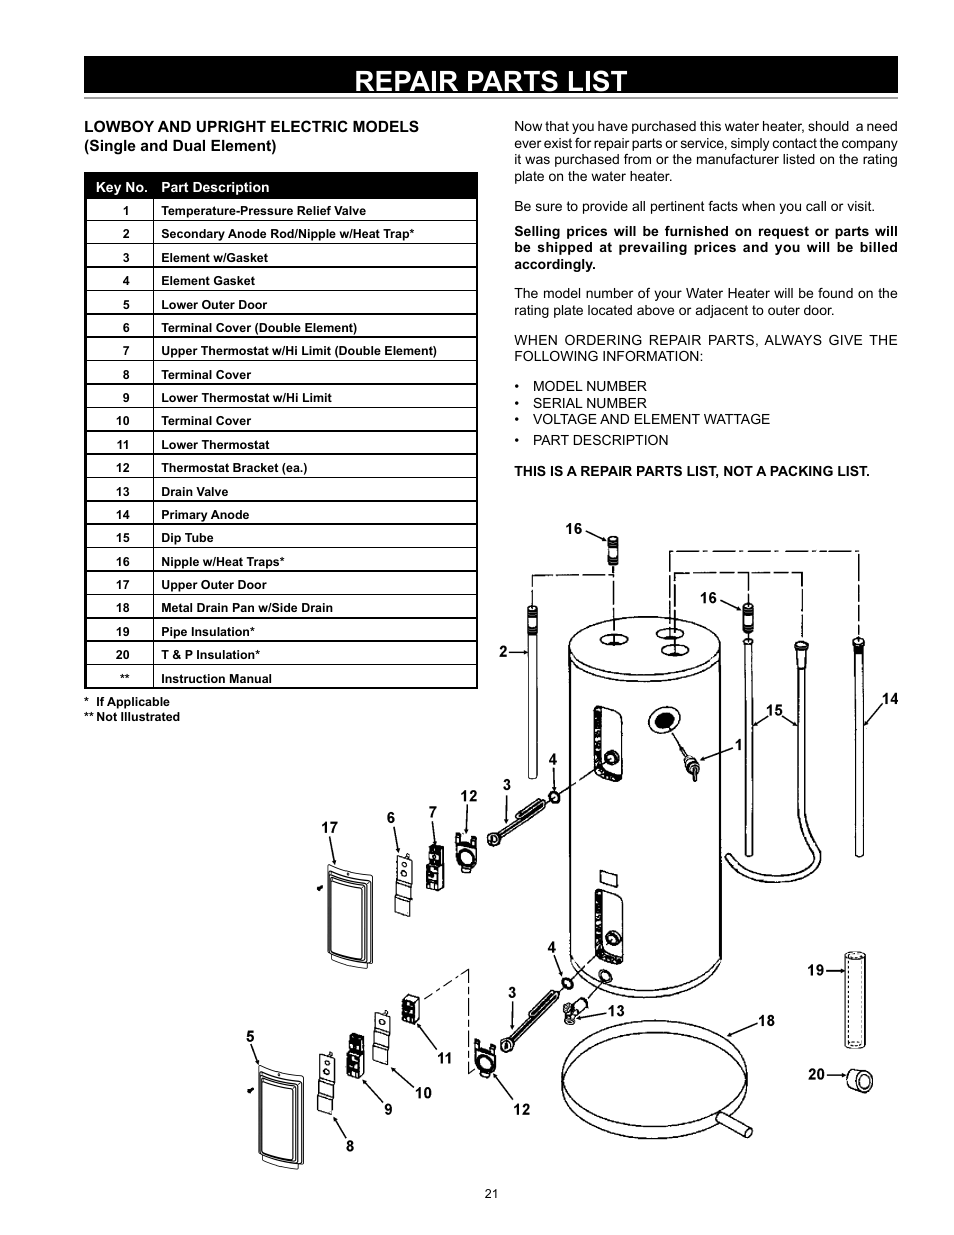 Repair Parts List John Wood Electric Water Heaters New User Manual Page 21 28